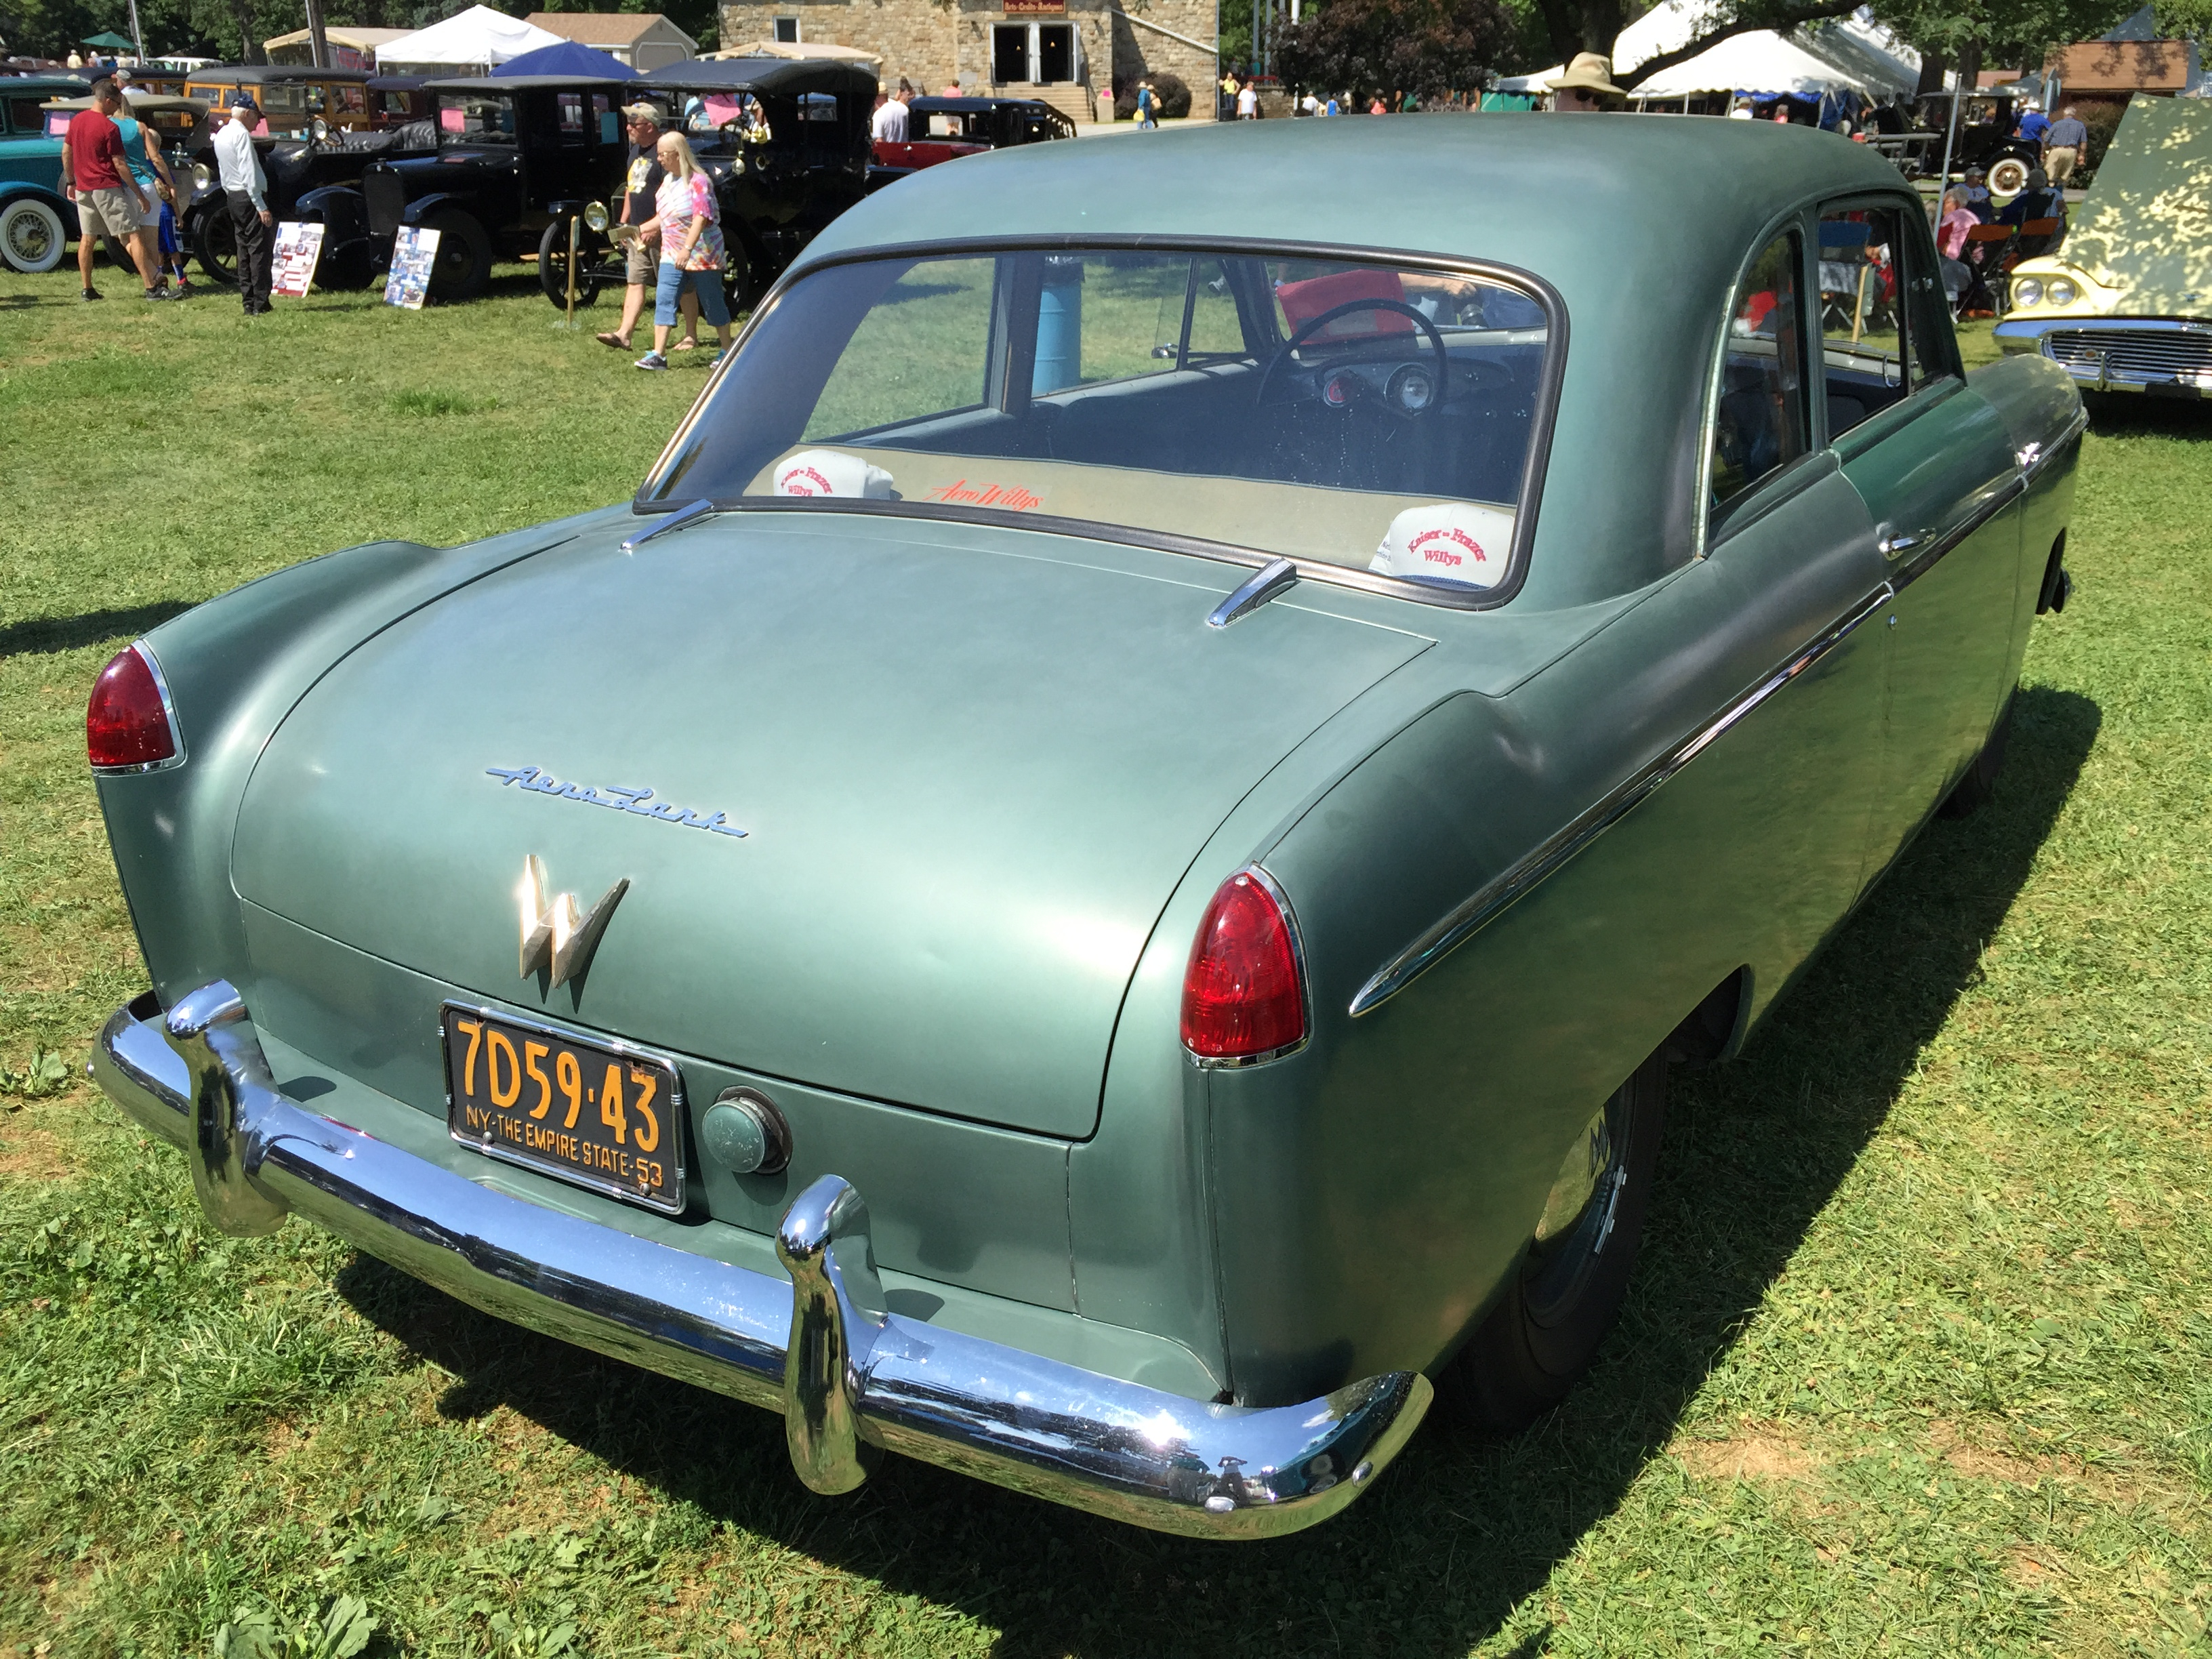 1953_Willys_Aero_Lark_at_2015_Macungie_s